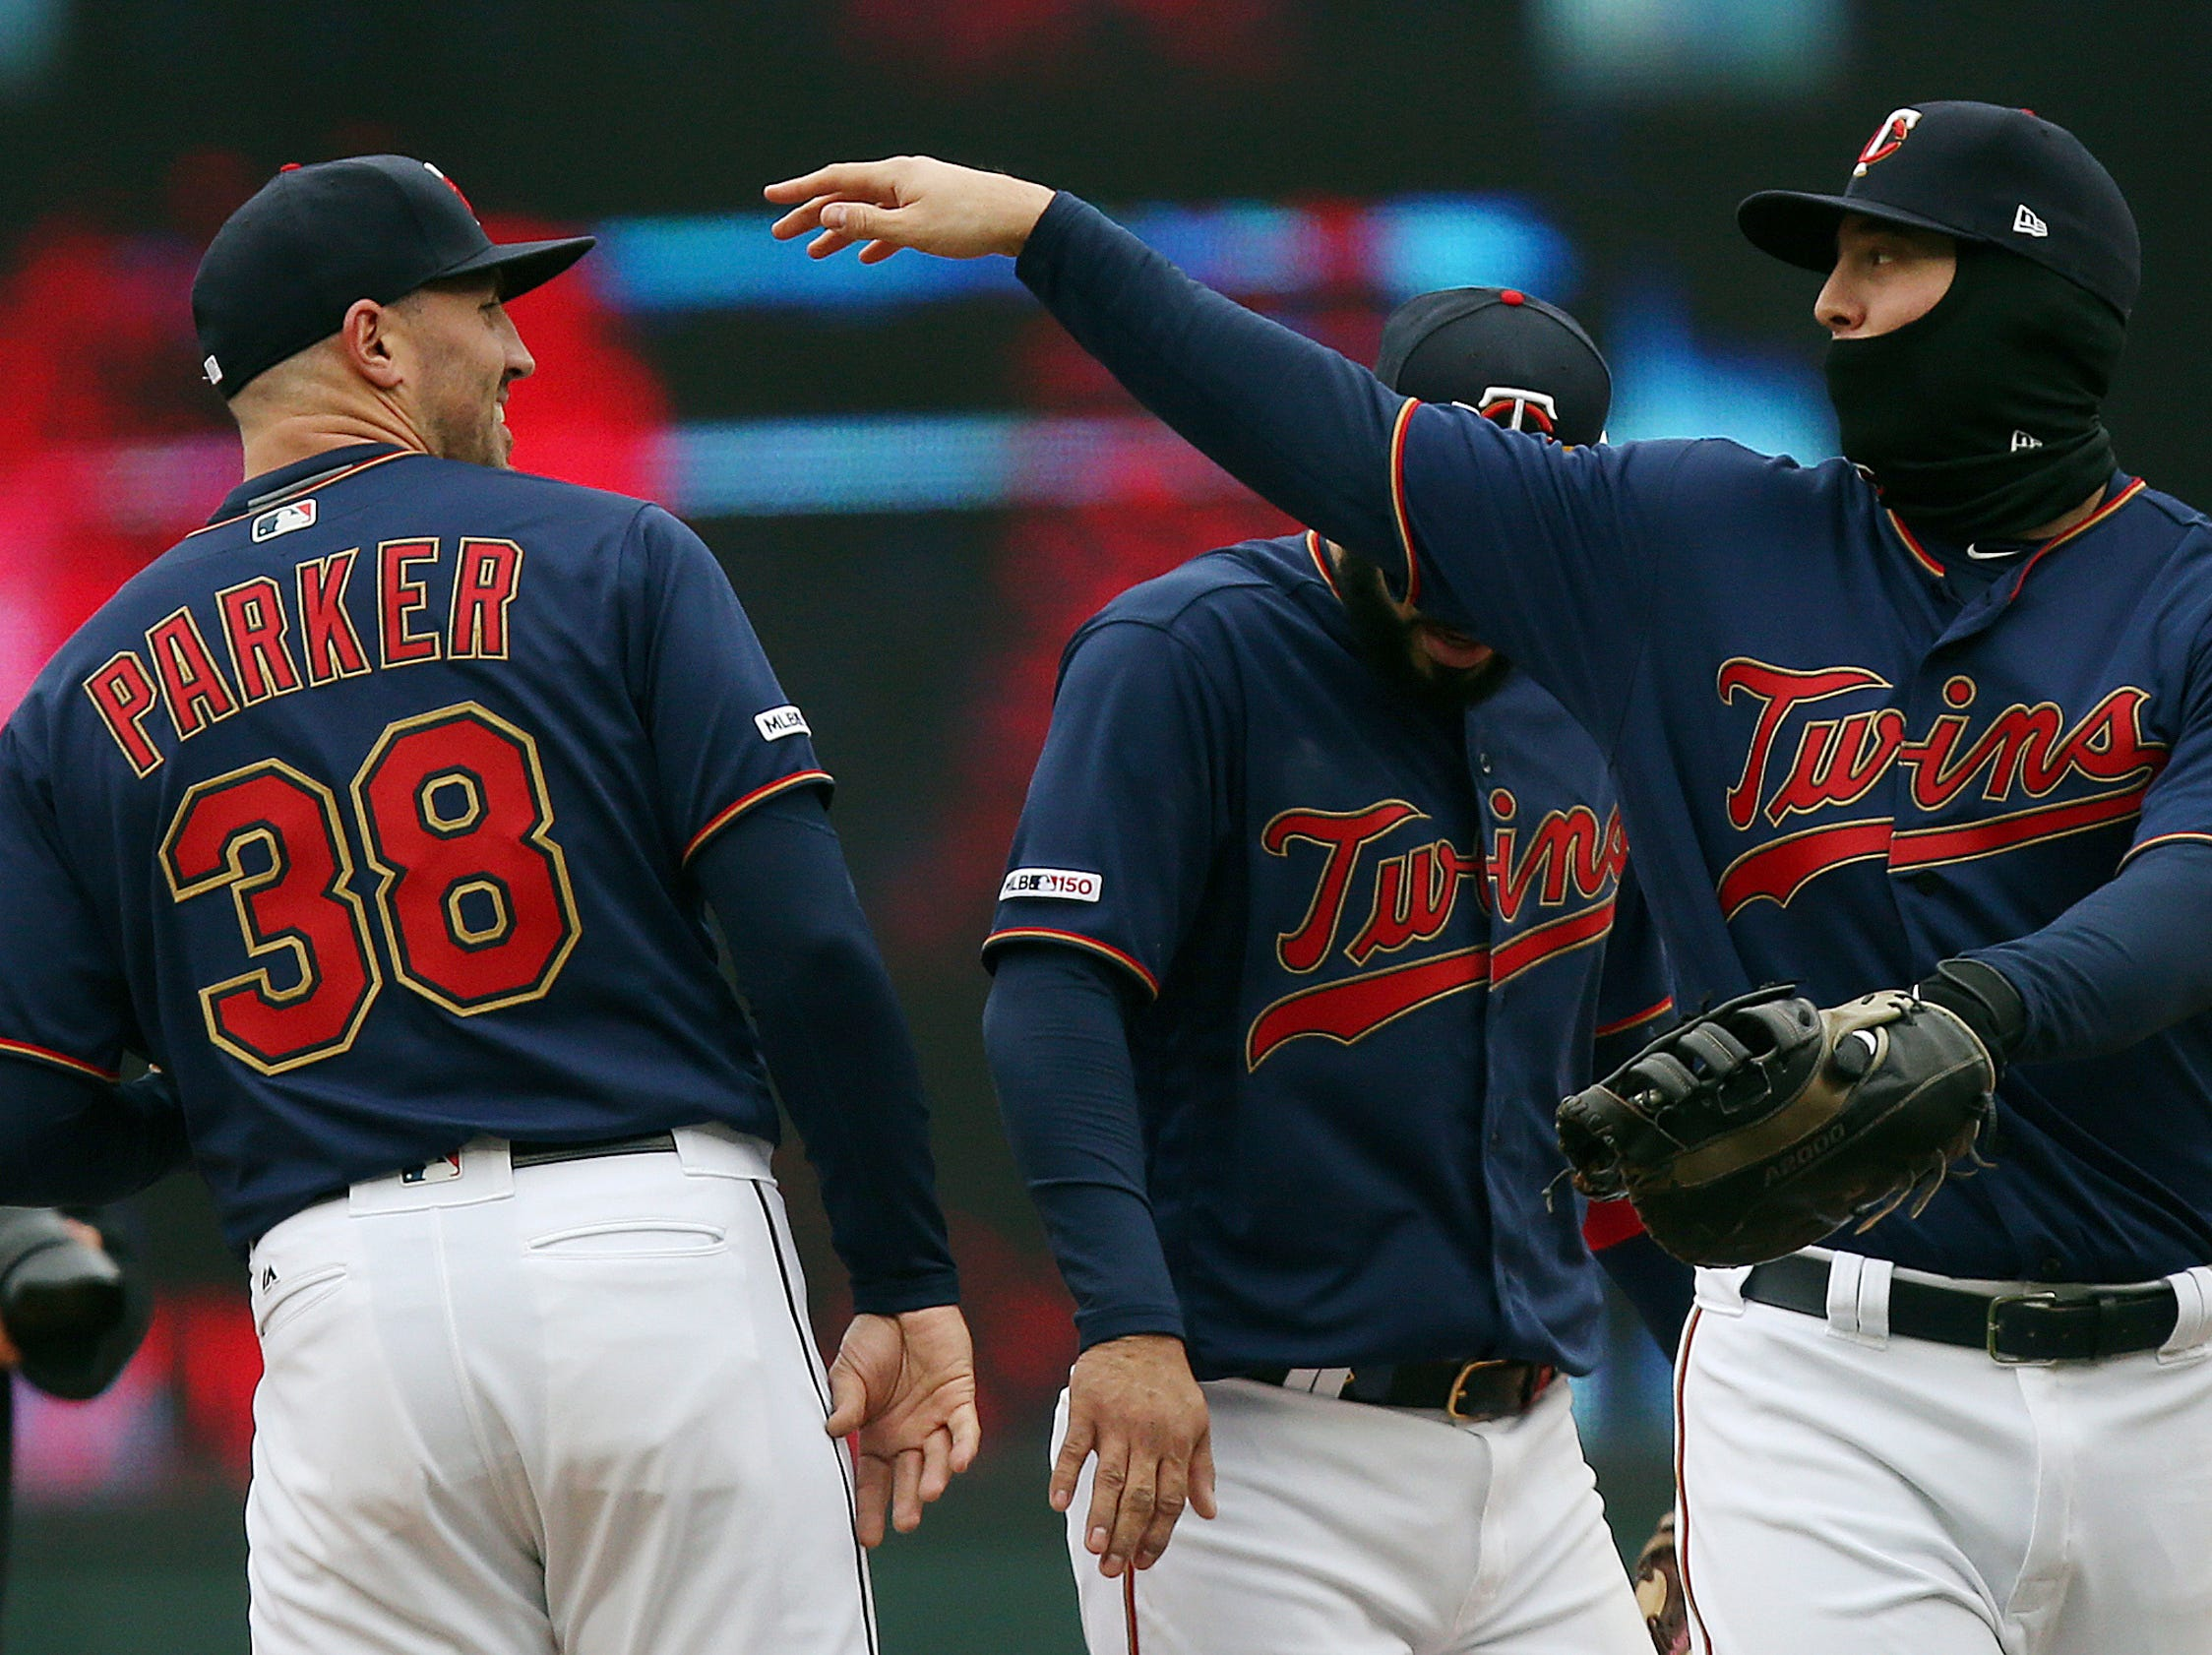 Minnesota Twins' pitcher Blake Parker smiles as teammate C.J. Cron congratulates him on after their 4-3 win against the Detroit Tigers Saturday, April 13, 2019 in Minneapolis.